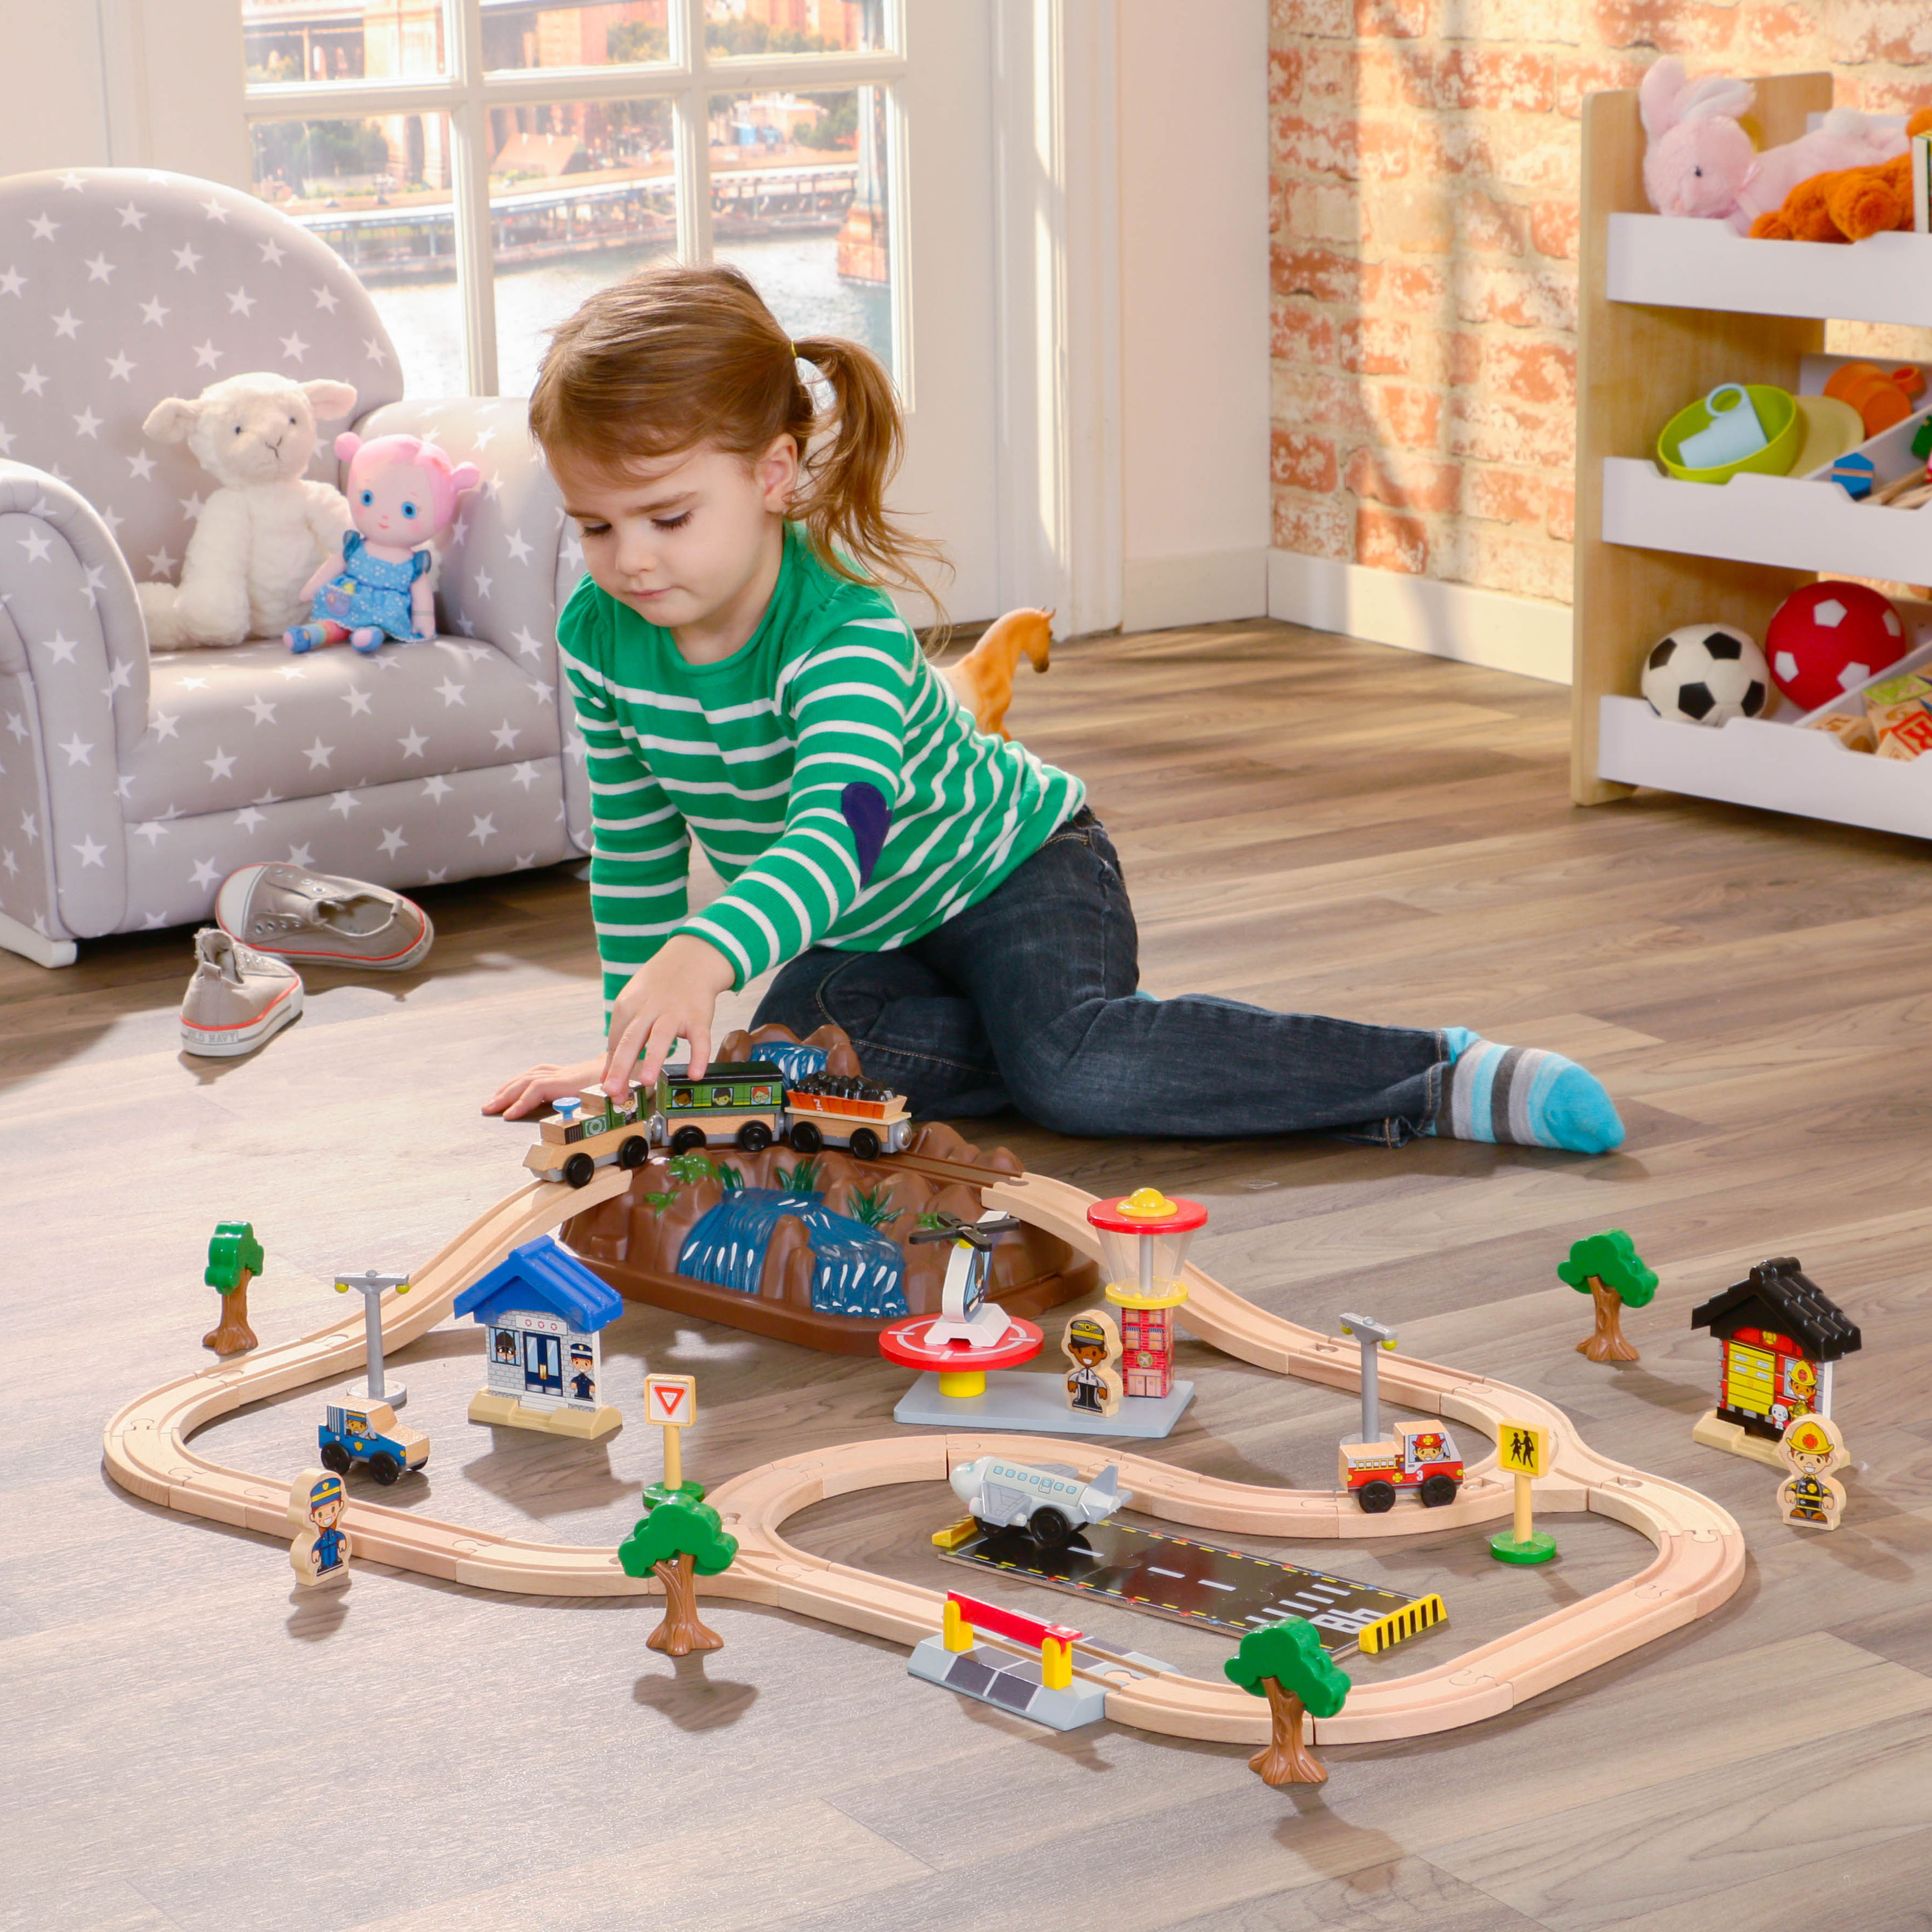 KidKraft Bucket Top Mountain Train Set with 61 accessories included by KidKraft